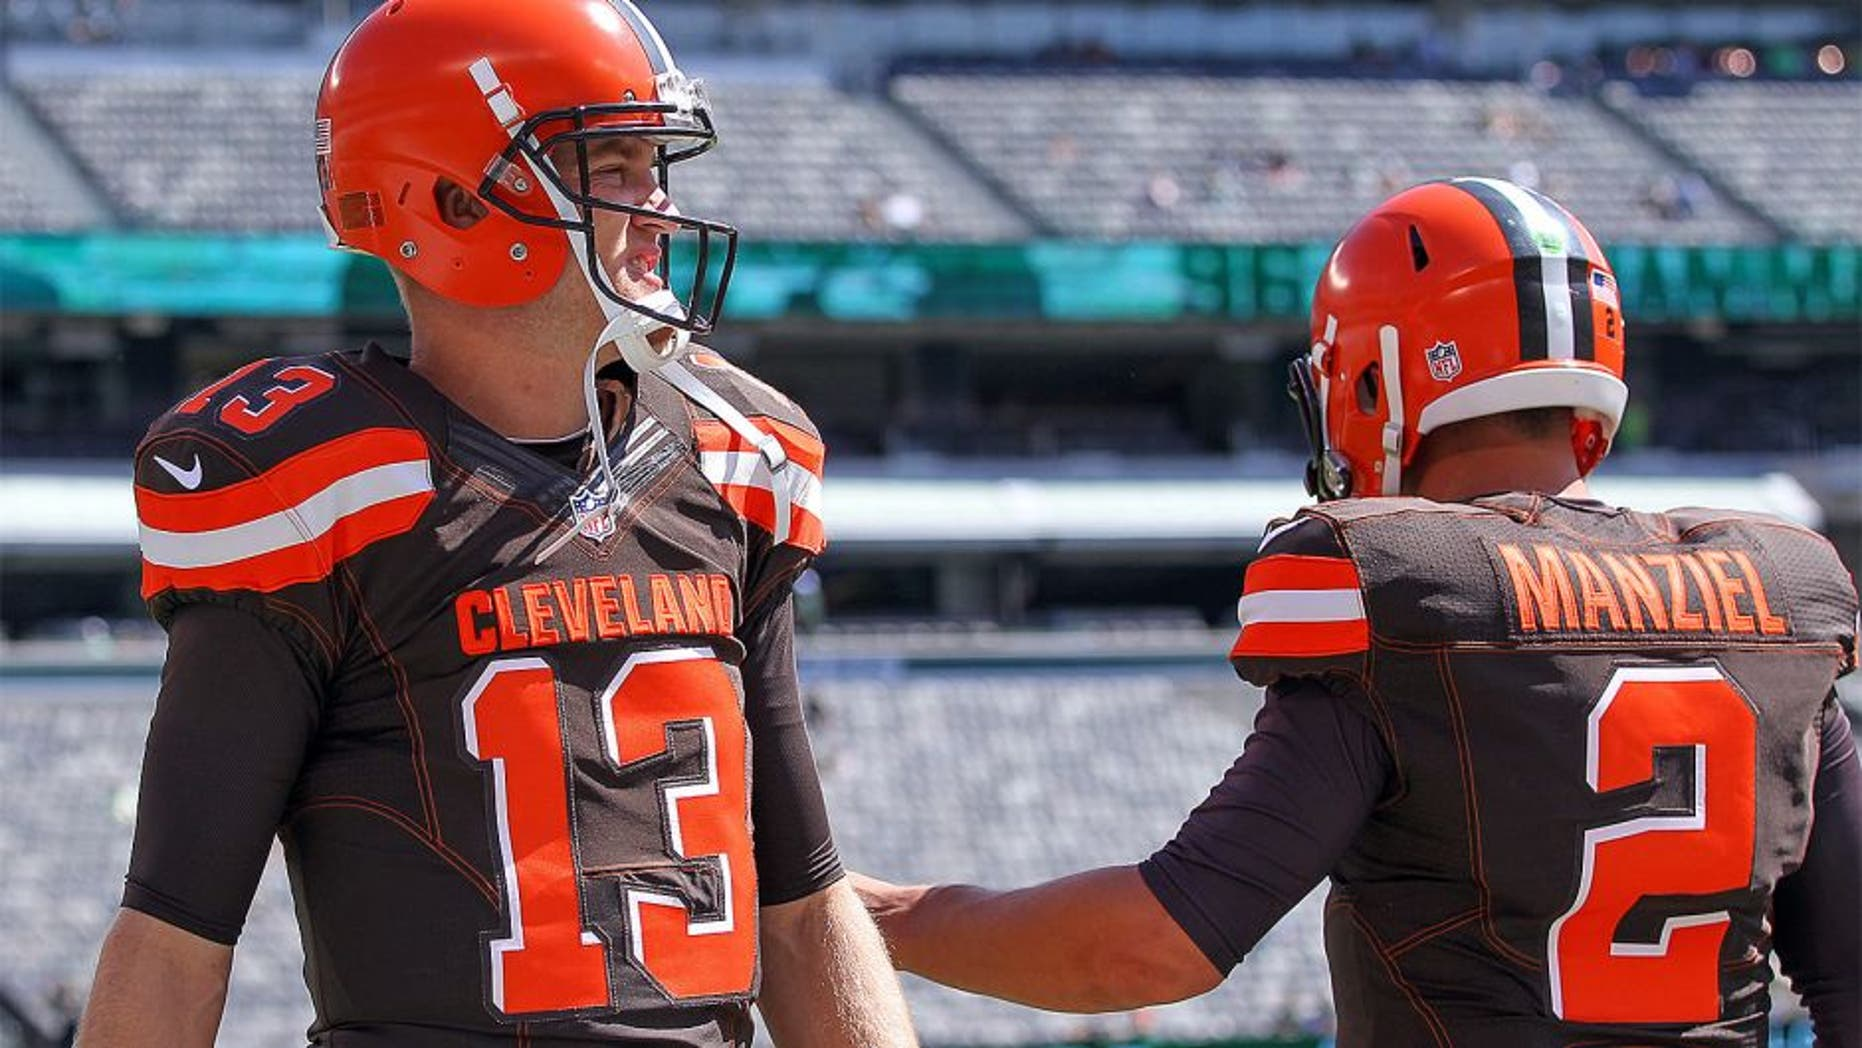 Sep 13, 2015; East Rutherford, NJ, USA; Cleveland Browns quarterback Johnny Manziel (2) and Cleveland Browns quarterback Josh McCown (13) during the pre game warmups for their game against the New York Jets at MetLife Stadium. Mandatory Credit: Ed Mulholland-USA TODAY Sports